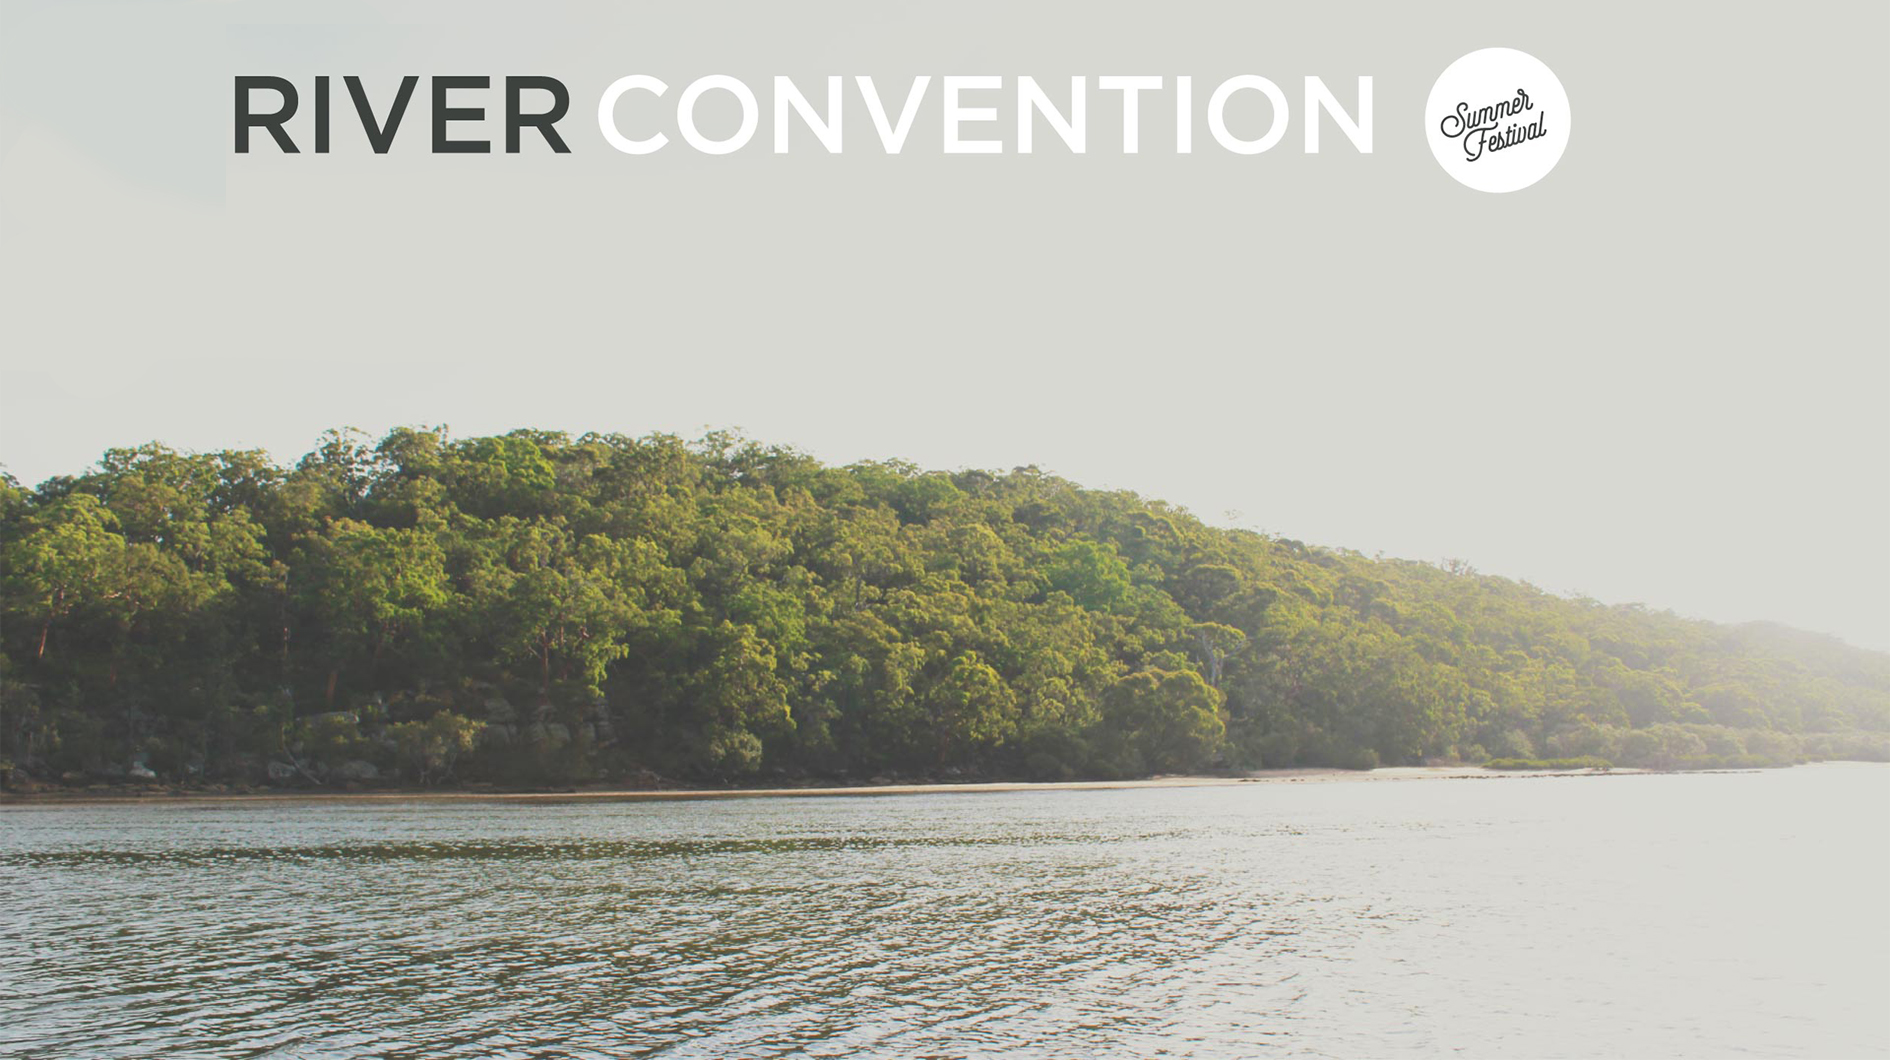 River Convention 2016